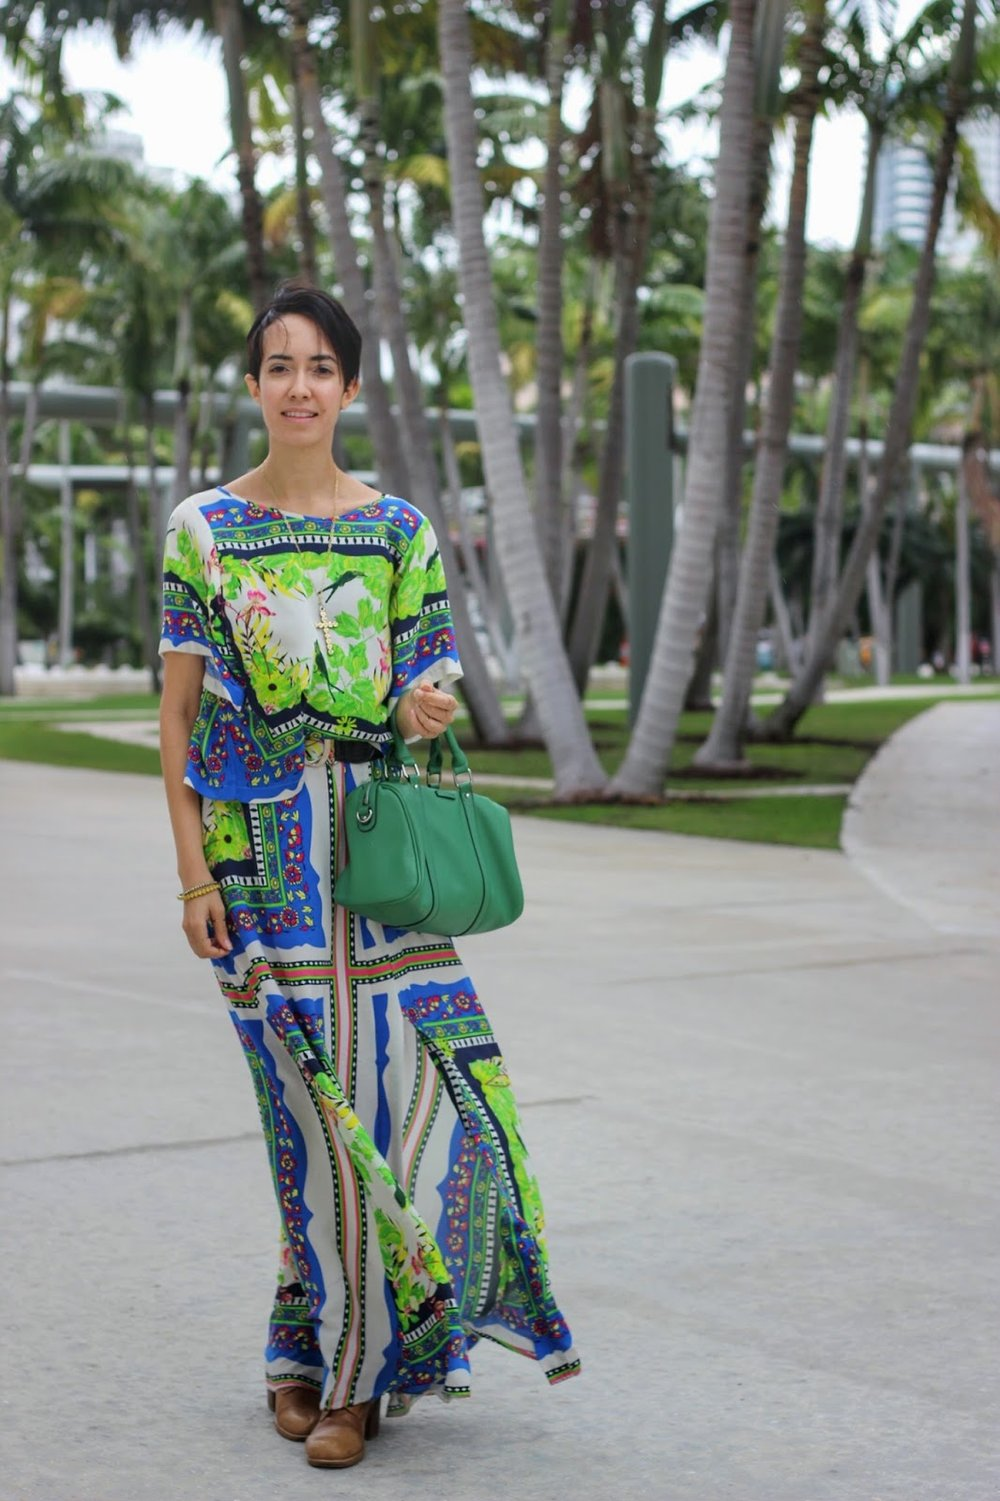 lifesthayle-miami-art-basel-look.jpg